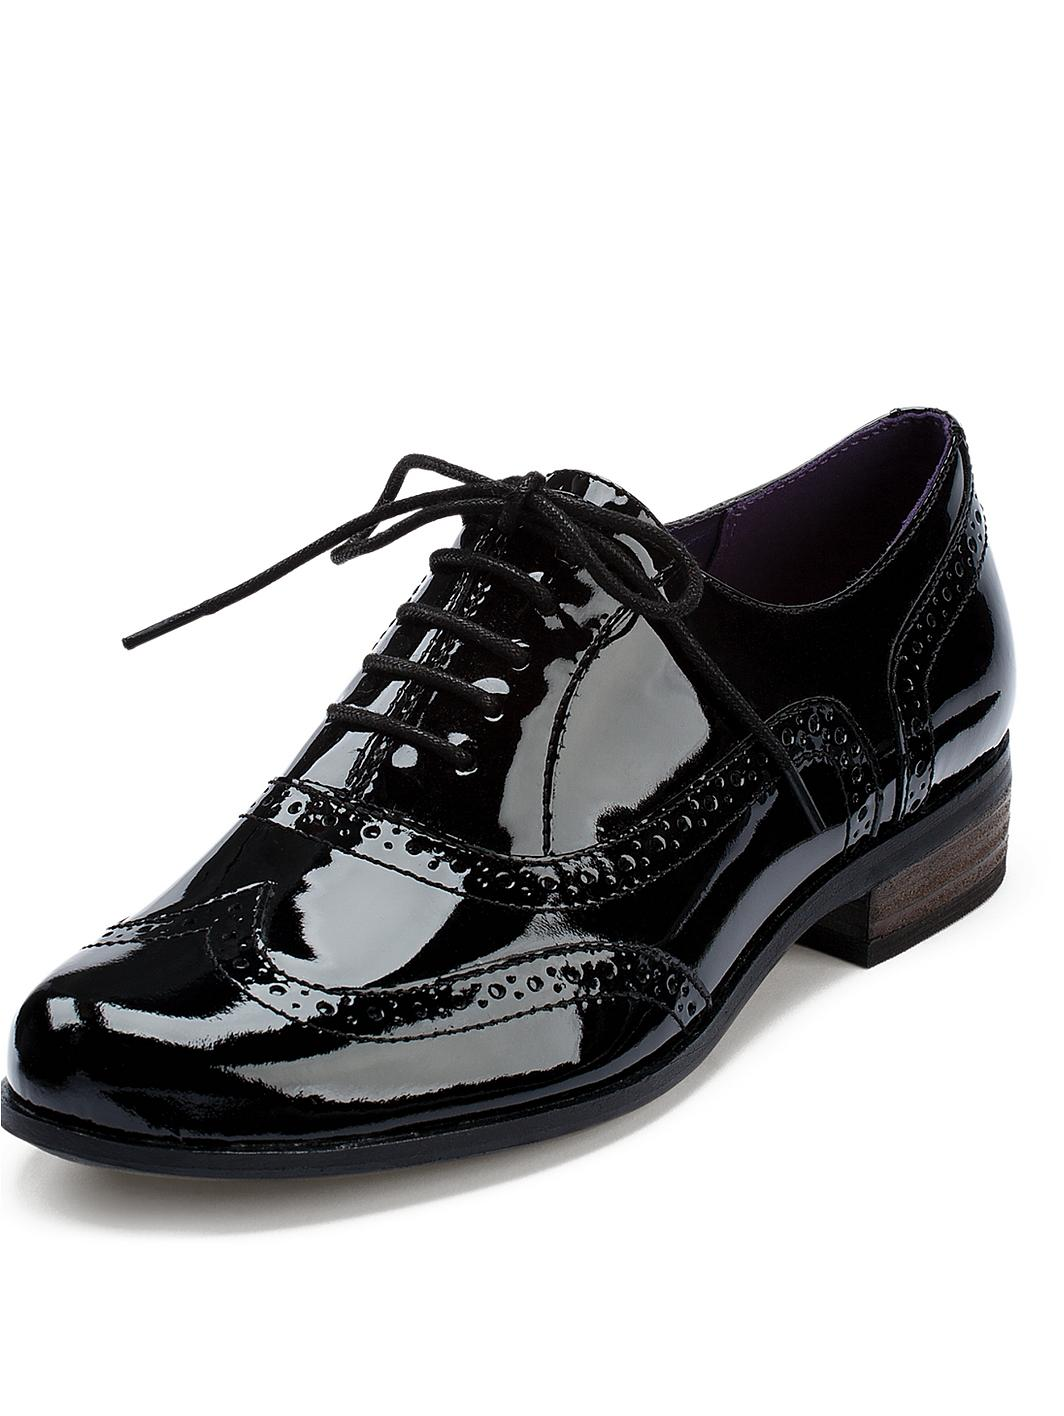 Go for preppy style in women's brogues & lace-ups | Free Delivery & Returns | From block heel brogues to lace-up loafers.